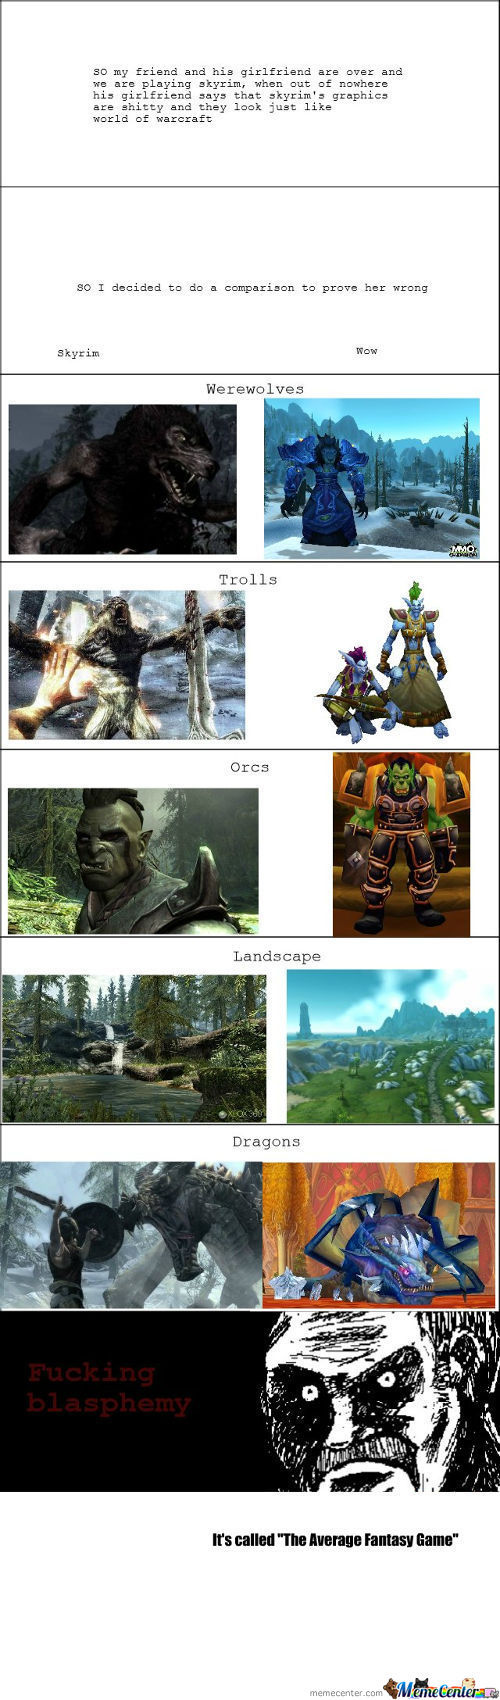 [RMX] Skyrim Vs Wow